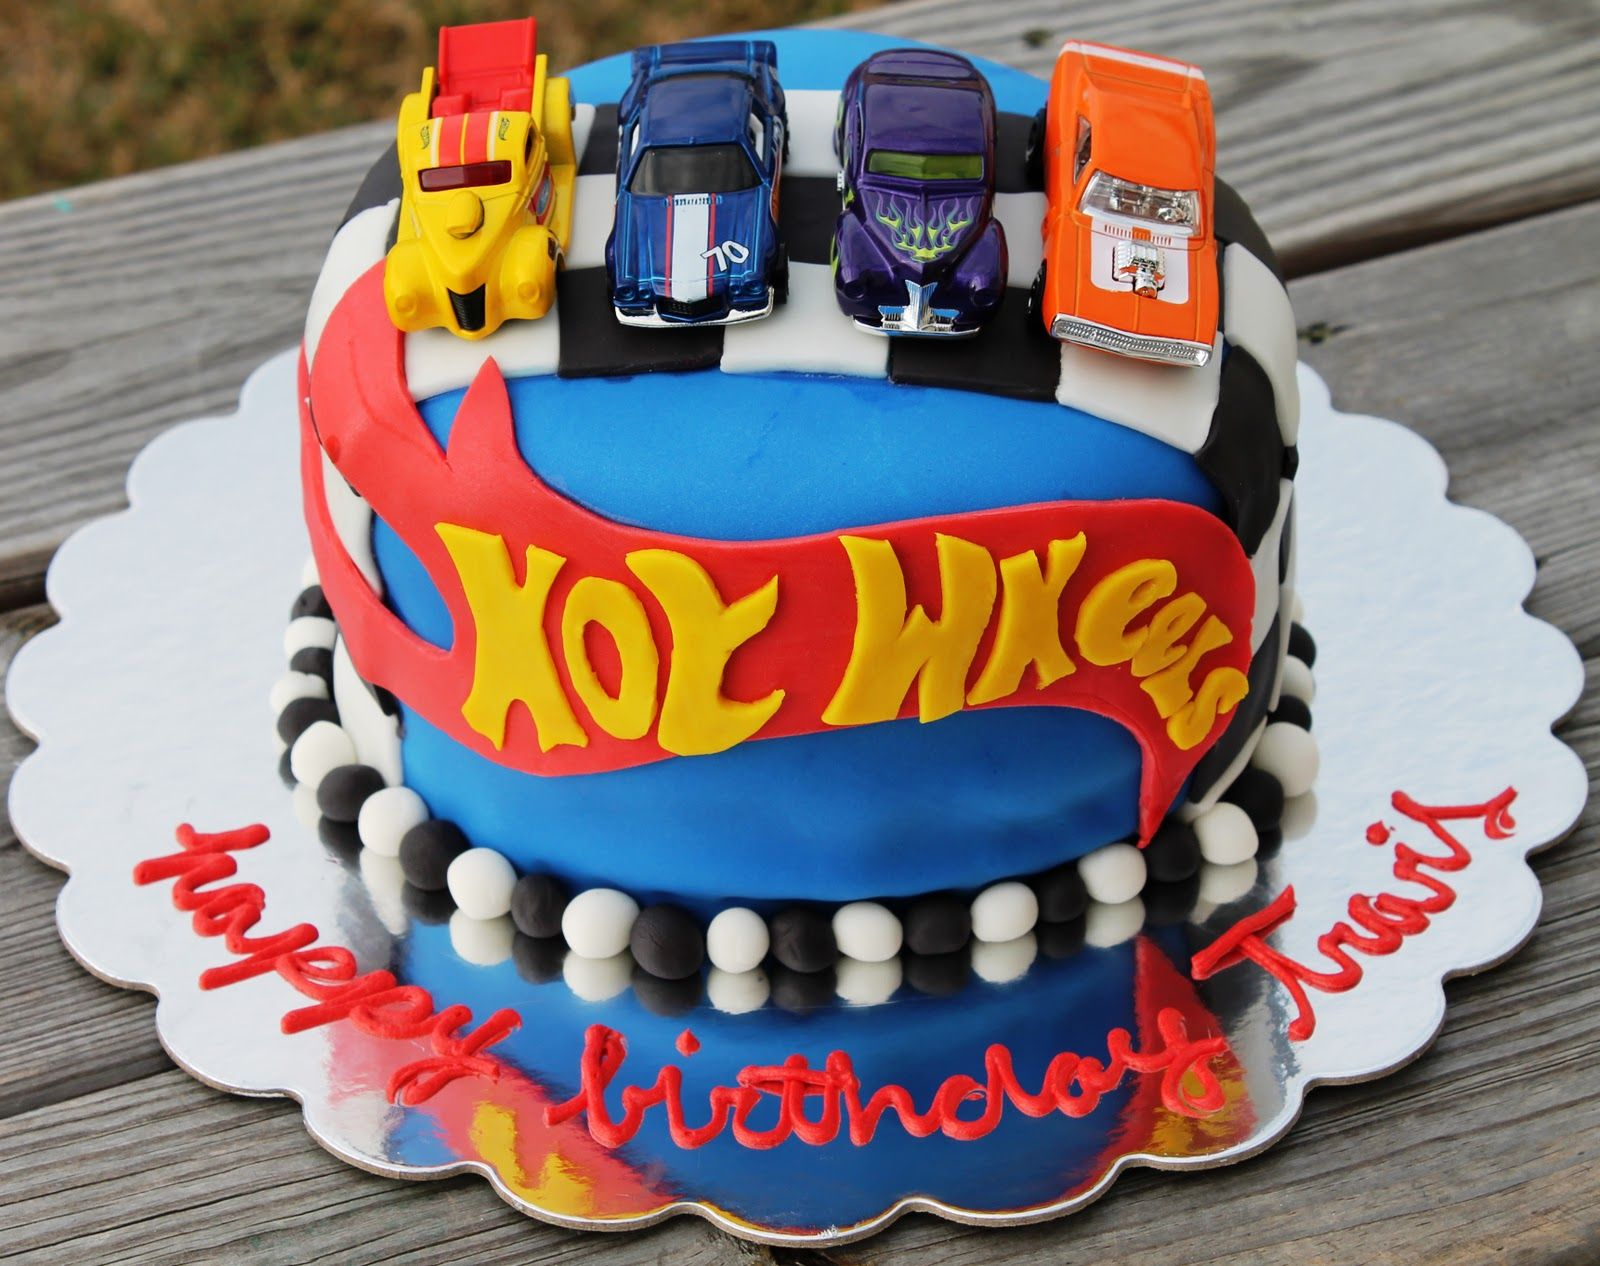 Hot Wheels Cake Designs Google Search Hot Wheels Cake Hot